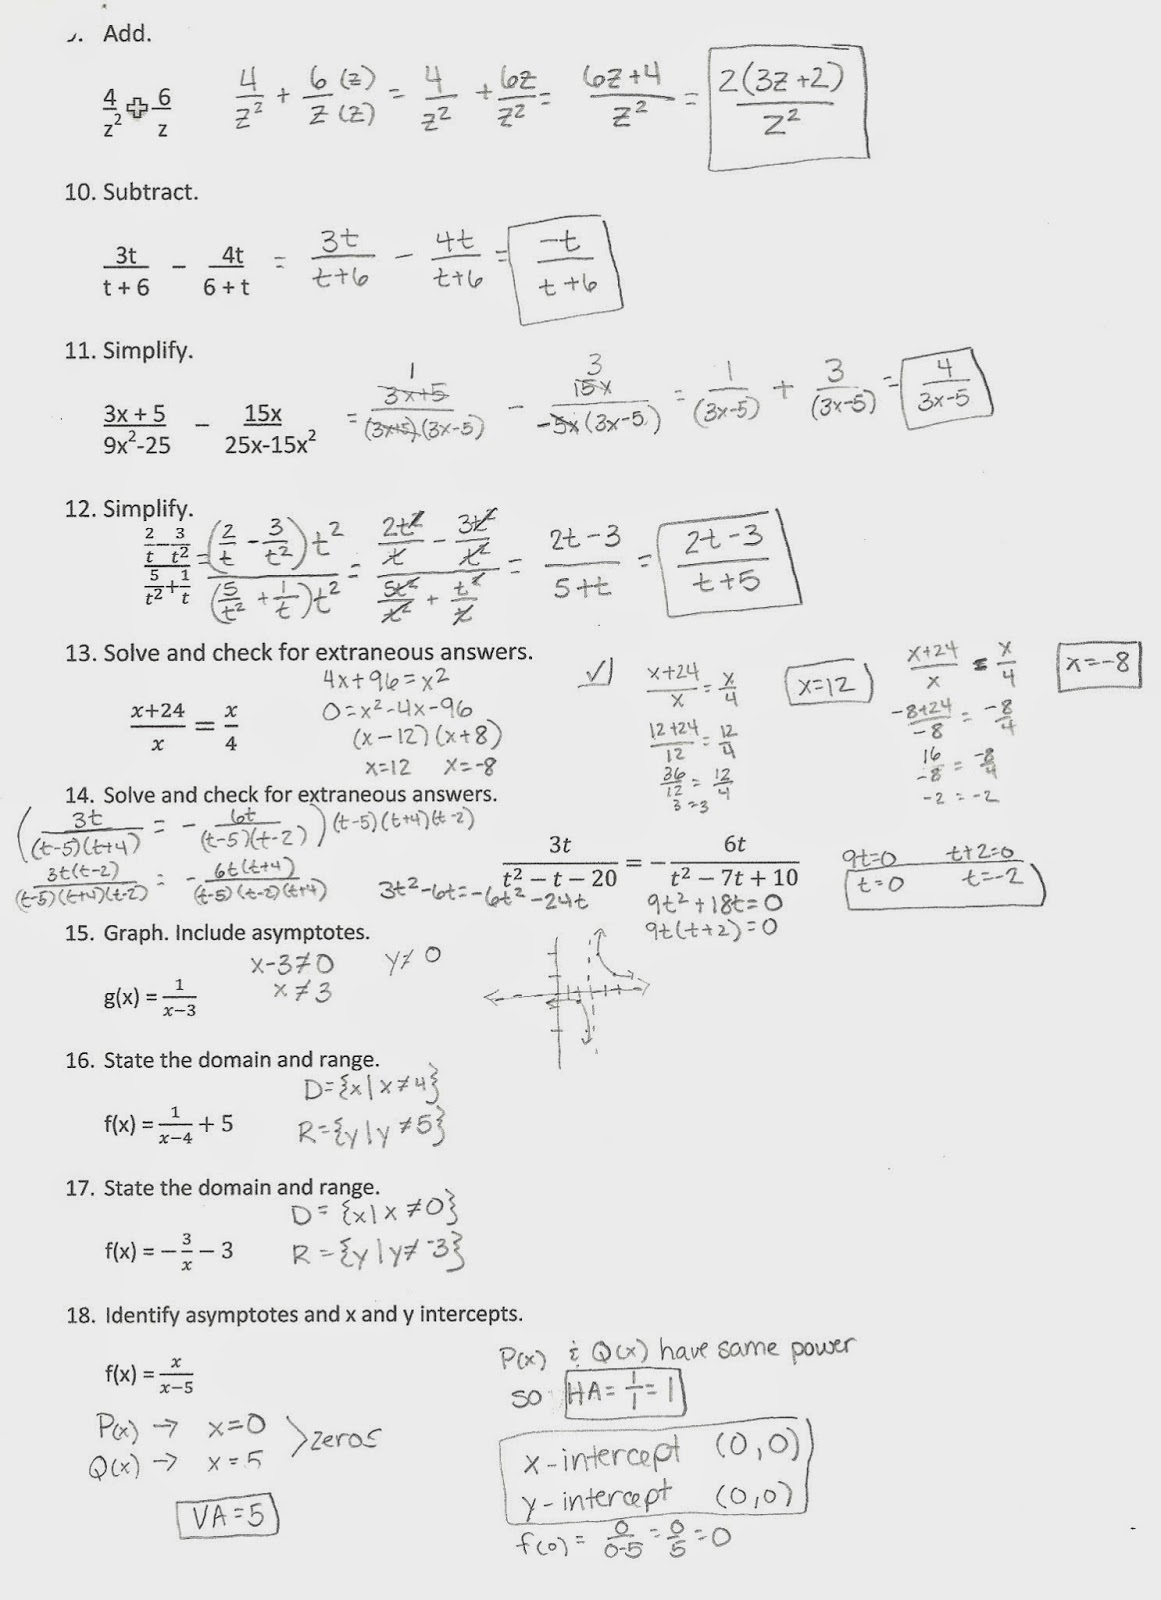 Worksheet Holt Mcdougal Algebra 2 Worksheet Answers Grass Fedjp Worksheet Study Site